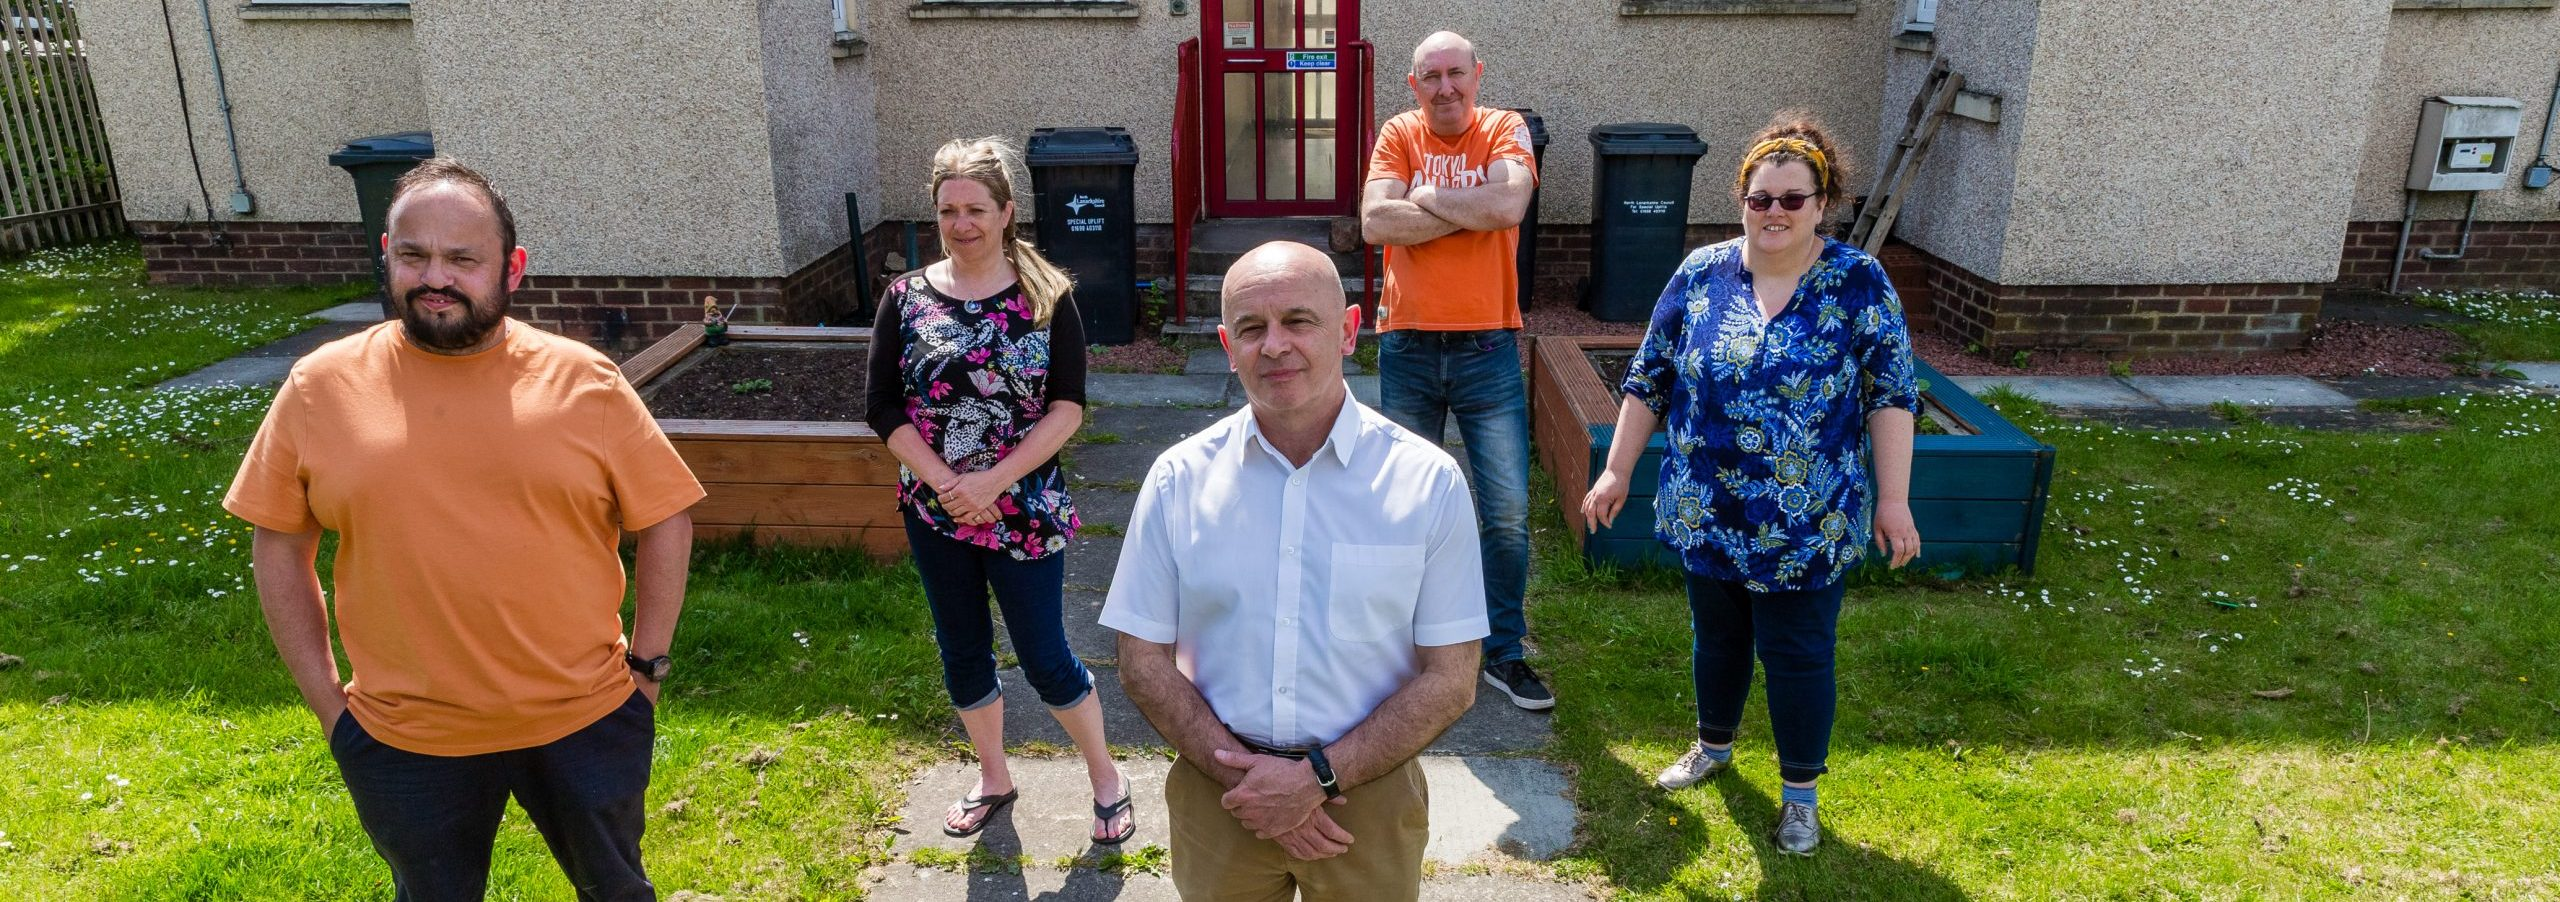 Our people at Simon Community Scotland